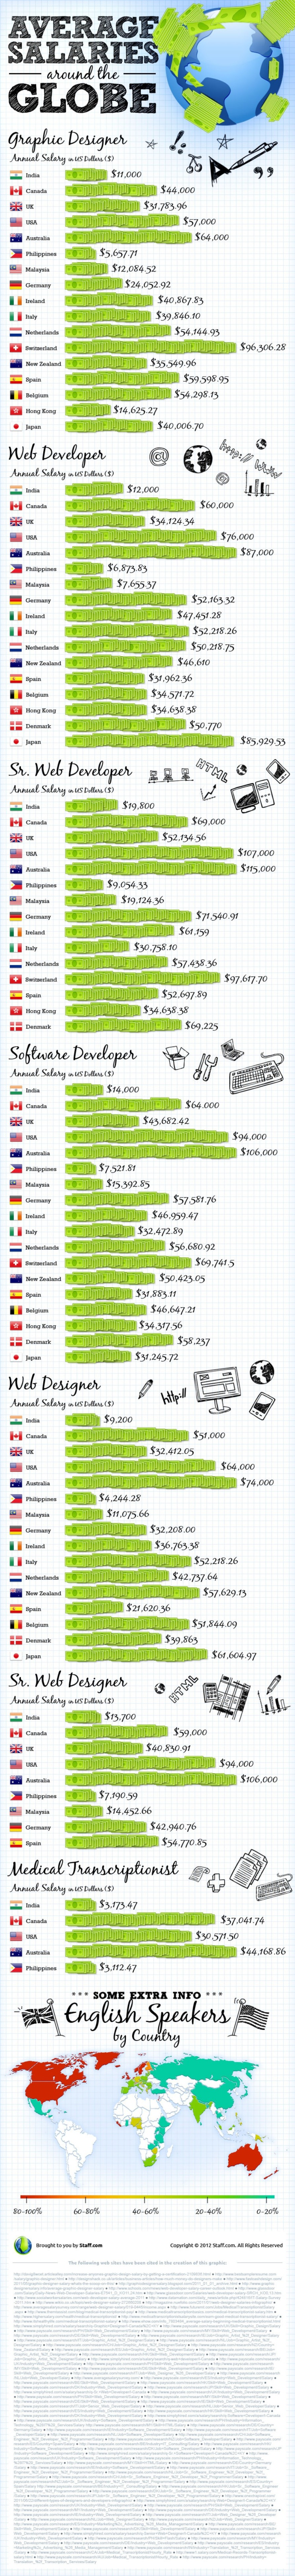 salaries-of-web-developers-in-india-the-philippines-usa-and-around-the-world_502914bb1691a_w1500